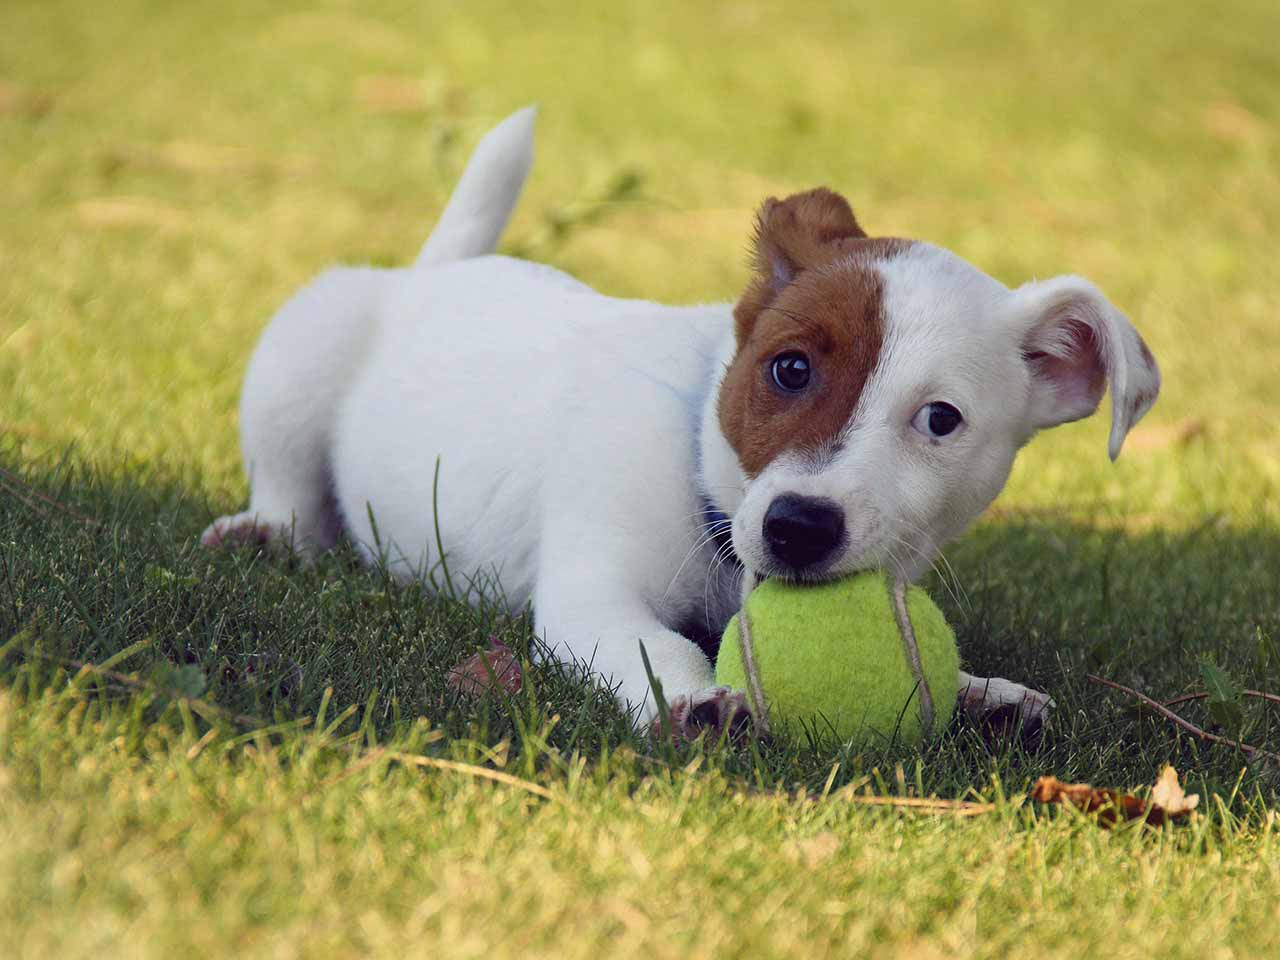 Dog playing a tennis ball game